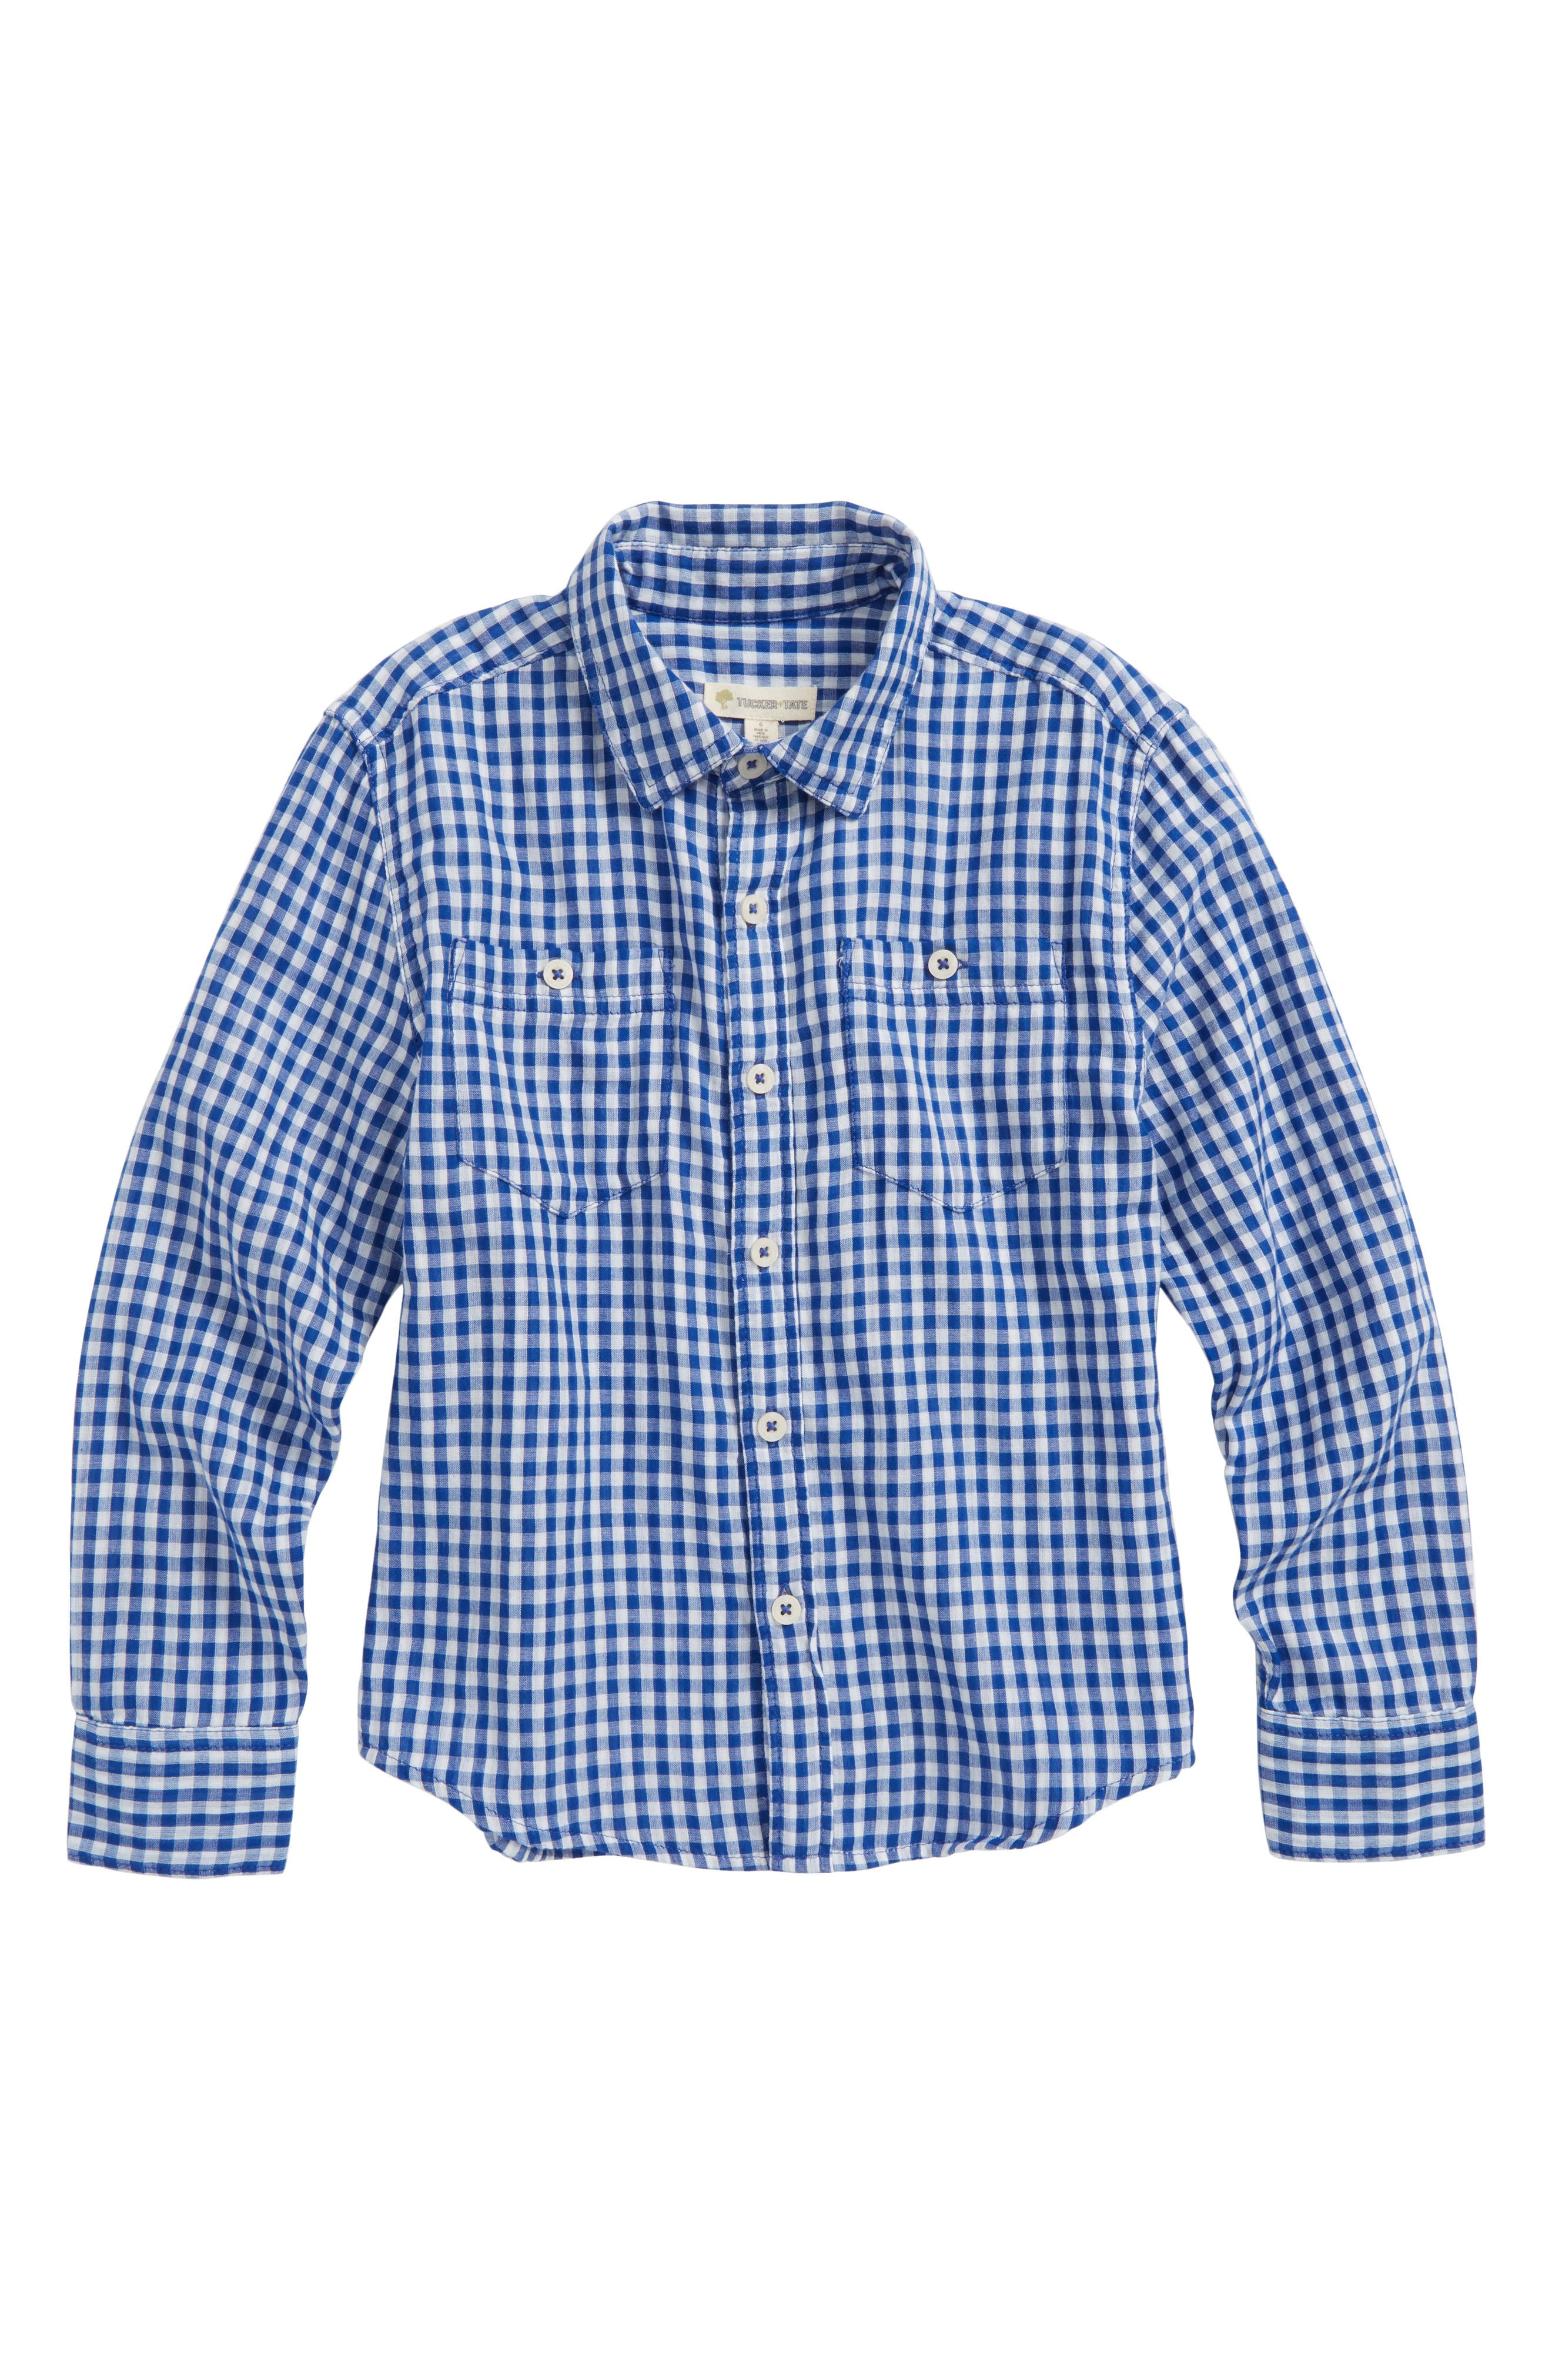 Tucker + Tate Double Cloth Shirt (Toddler Boys & Little Boys)